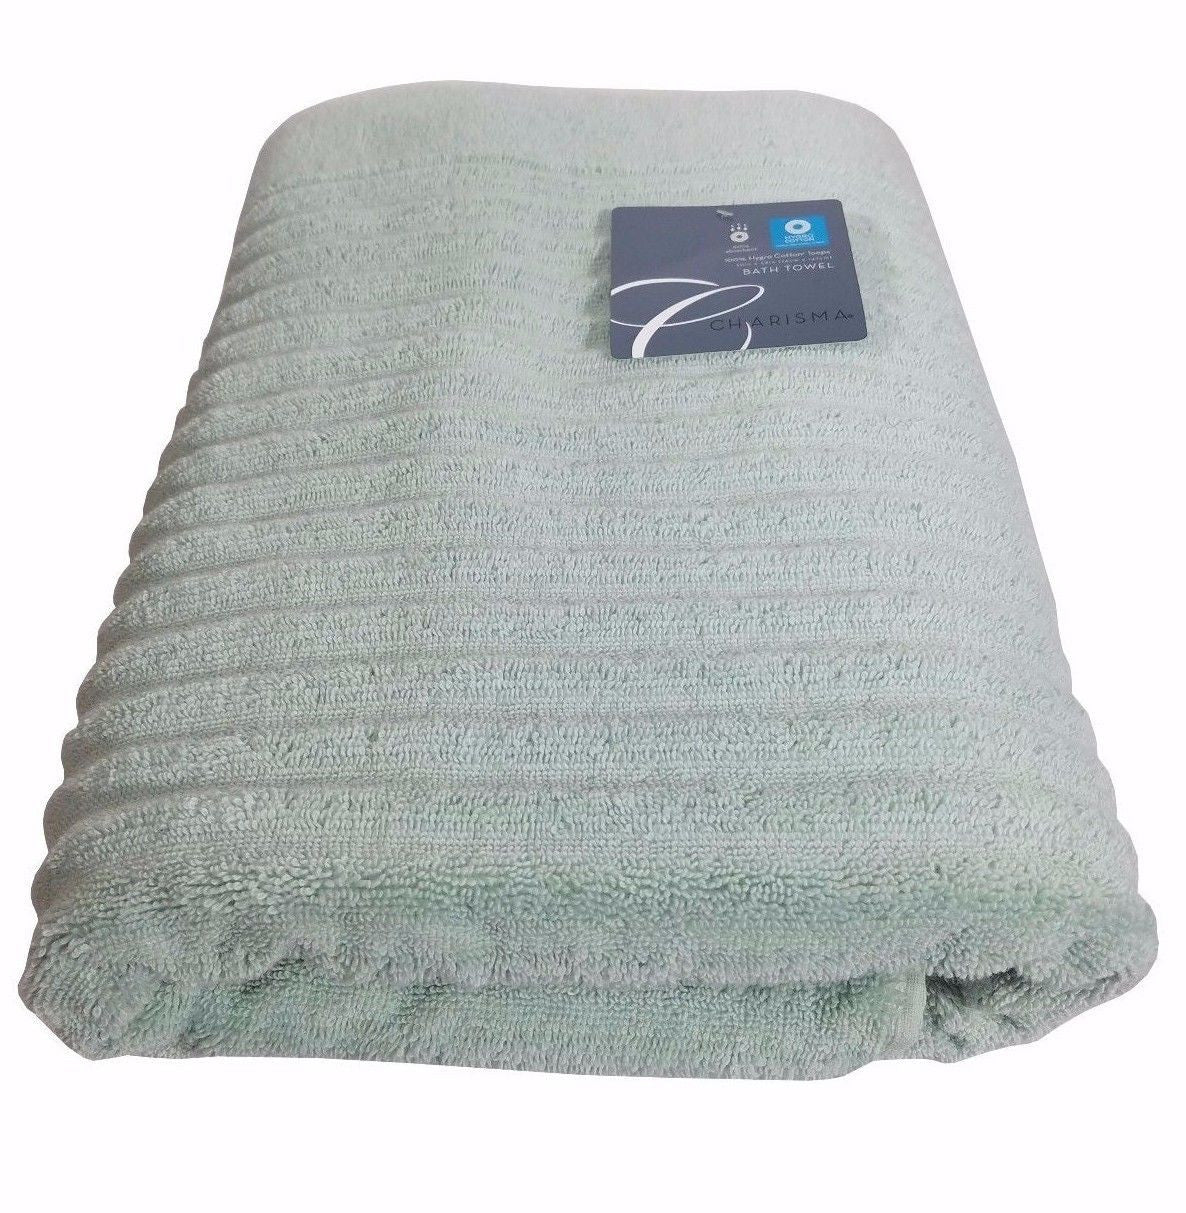 Charisma Luxury Ribbed Bath Towel 100% Hygro Cotton 30in x 58in - Moonlight Jade